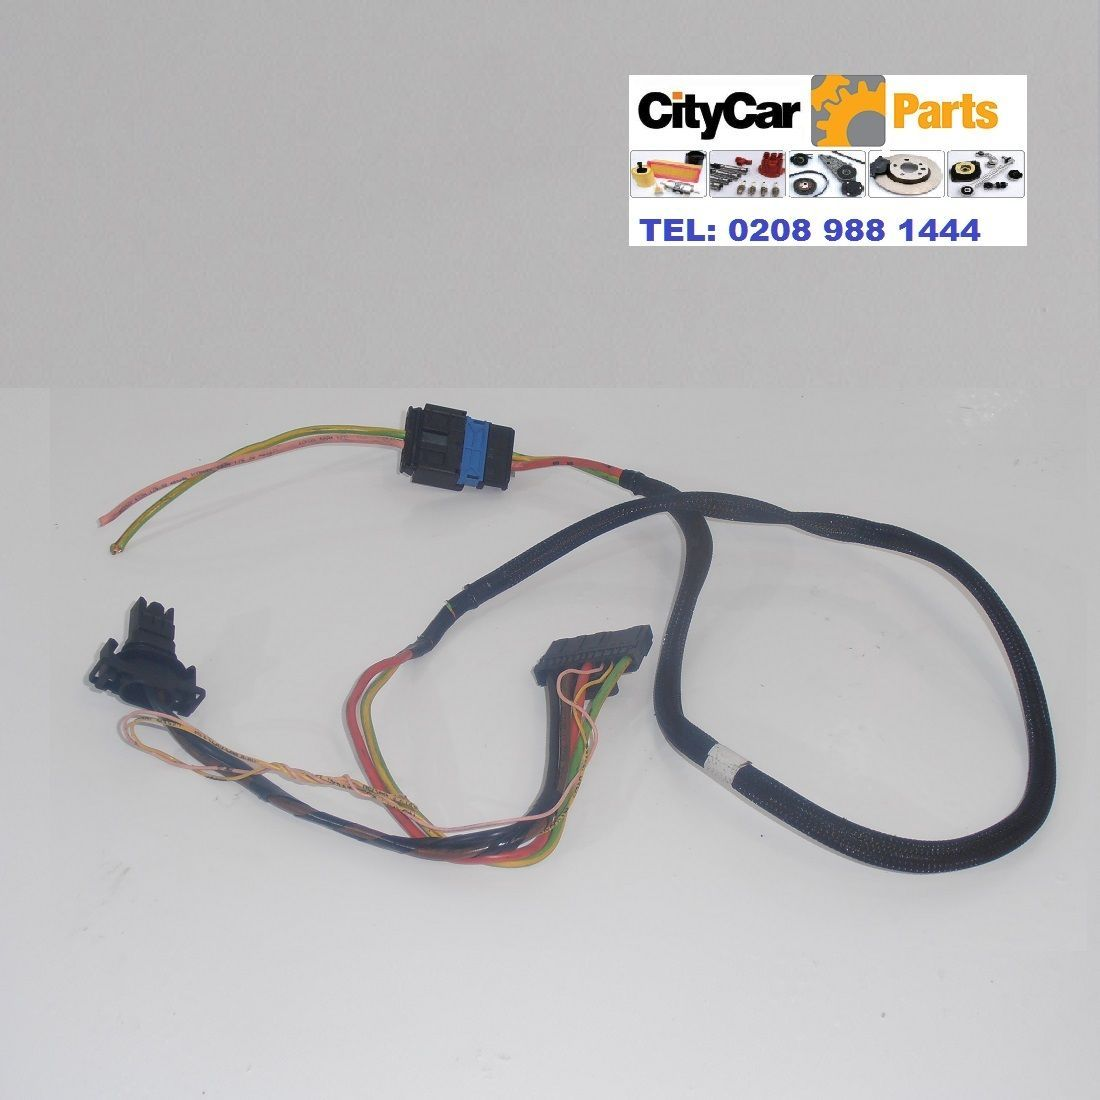 Magnificent Peugeot 308 Model From 2007 To 13 Hatchback Ac Heater Blower Wiring Wiring Digital Resources Attrlexorcompassionincorg